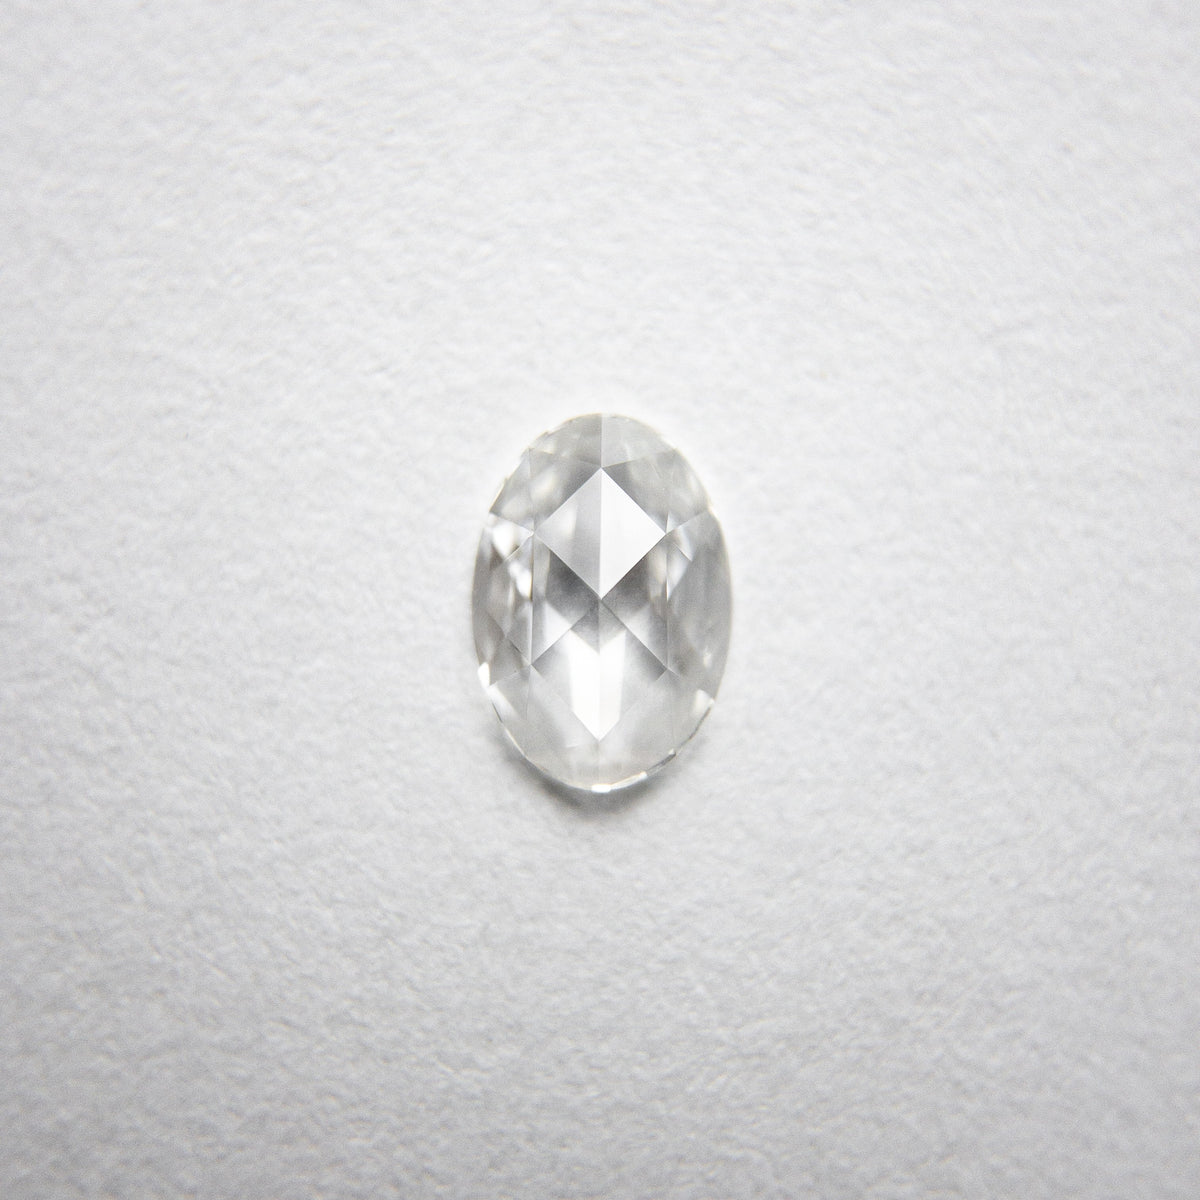 0.27ct 5.86x4.10x1.56mm Oval Rosecut 18238-01